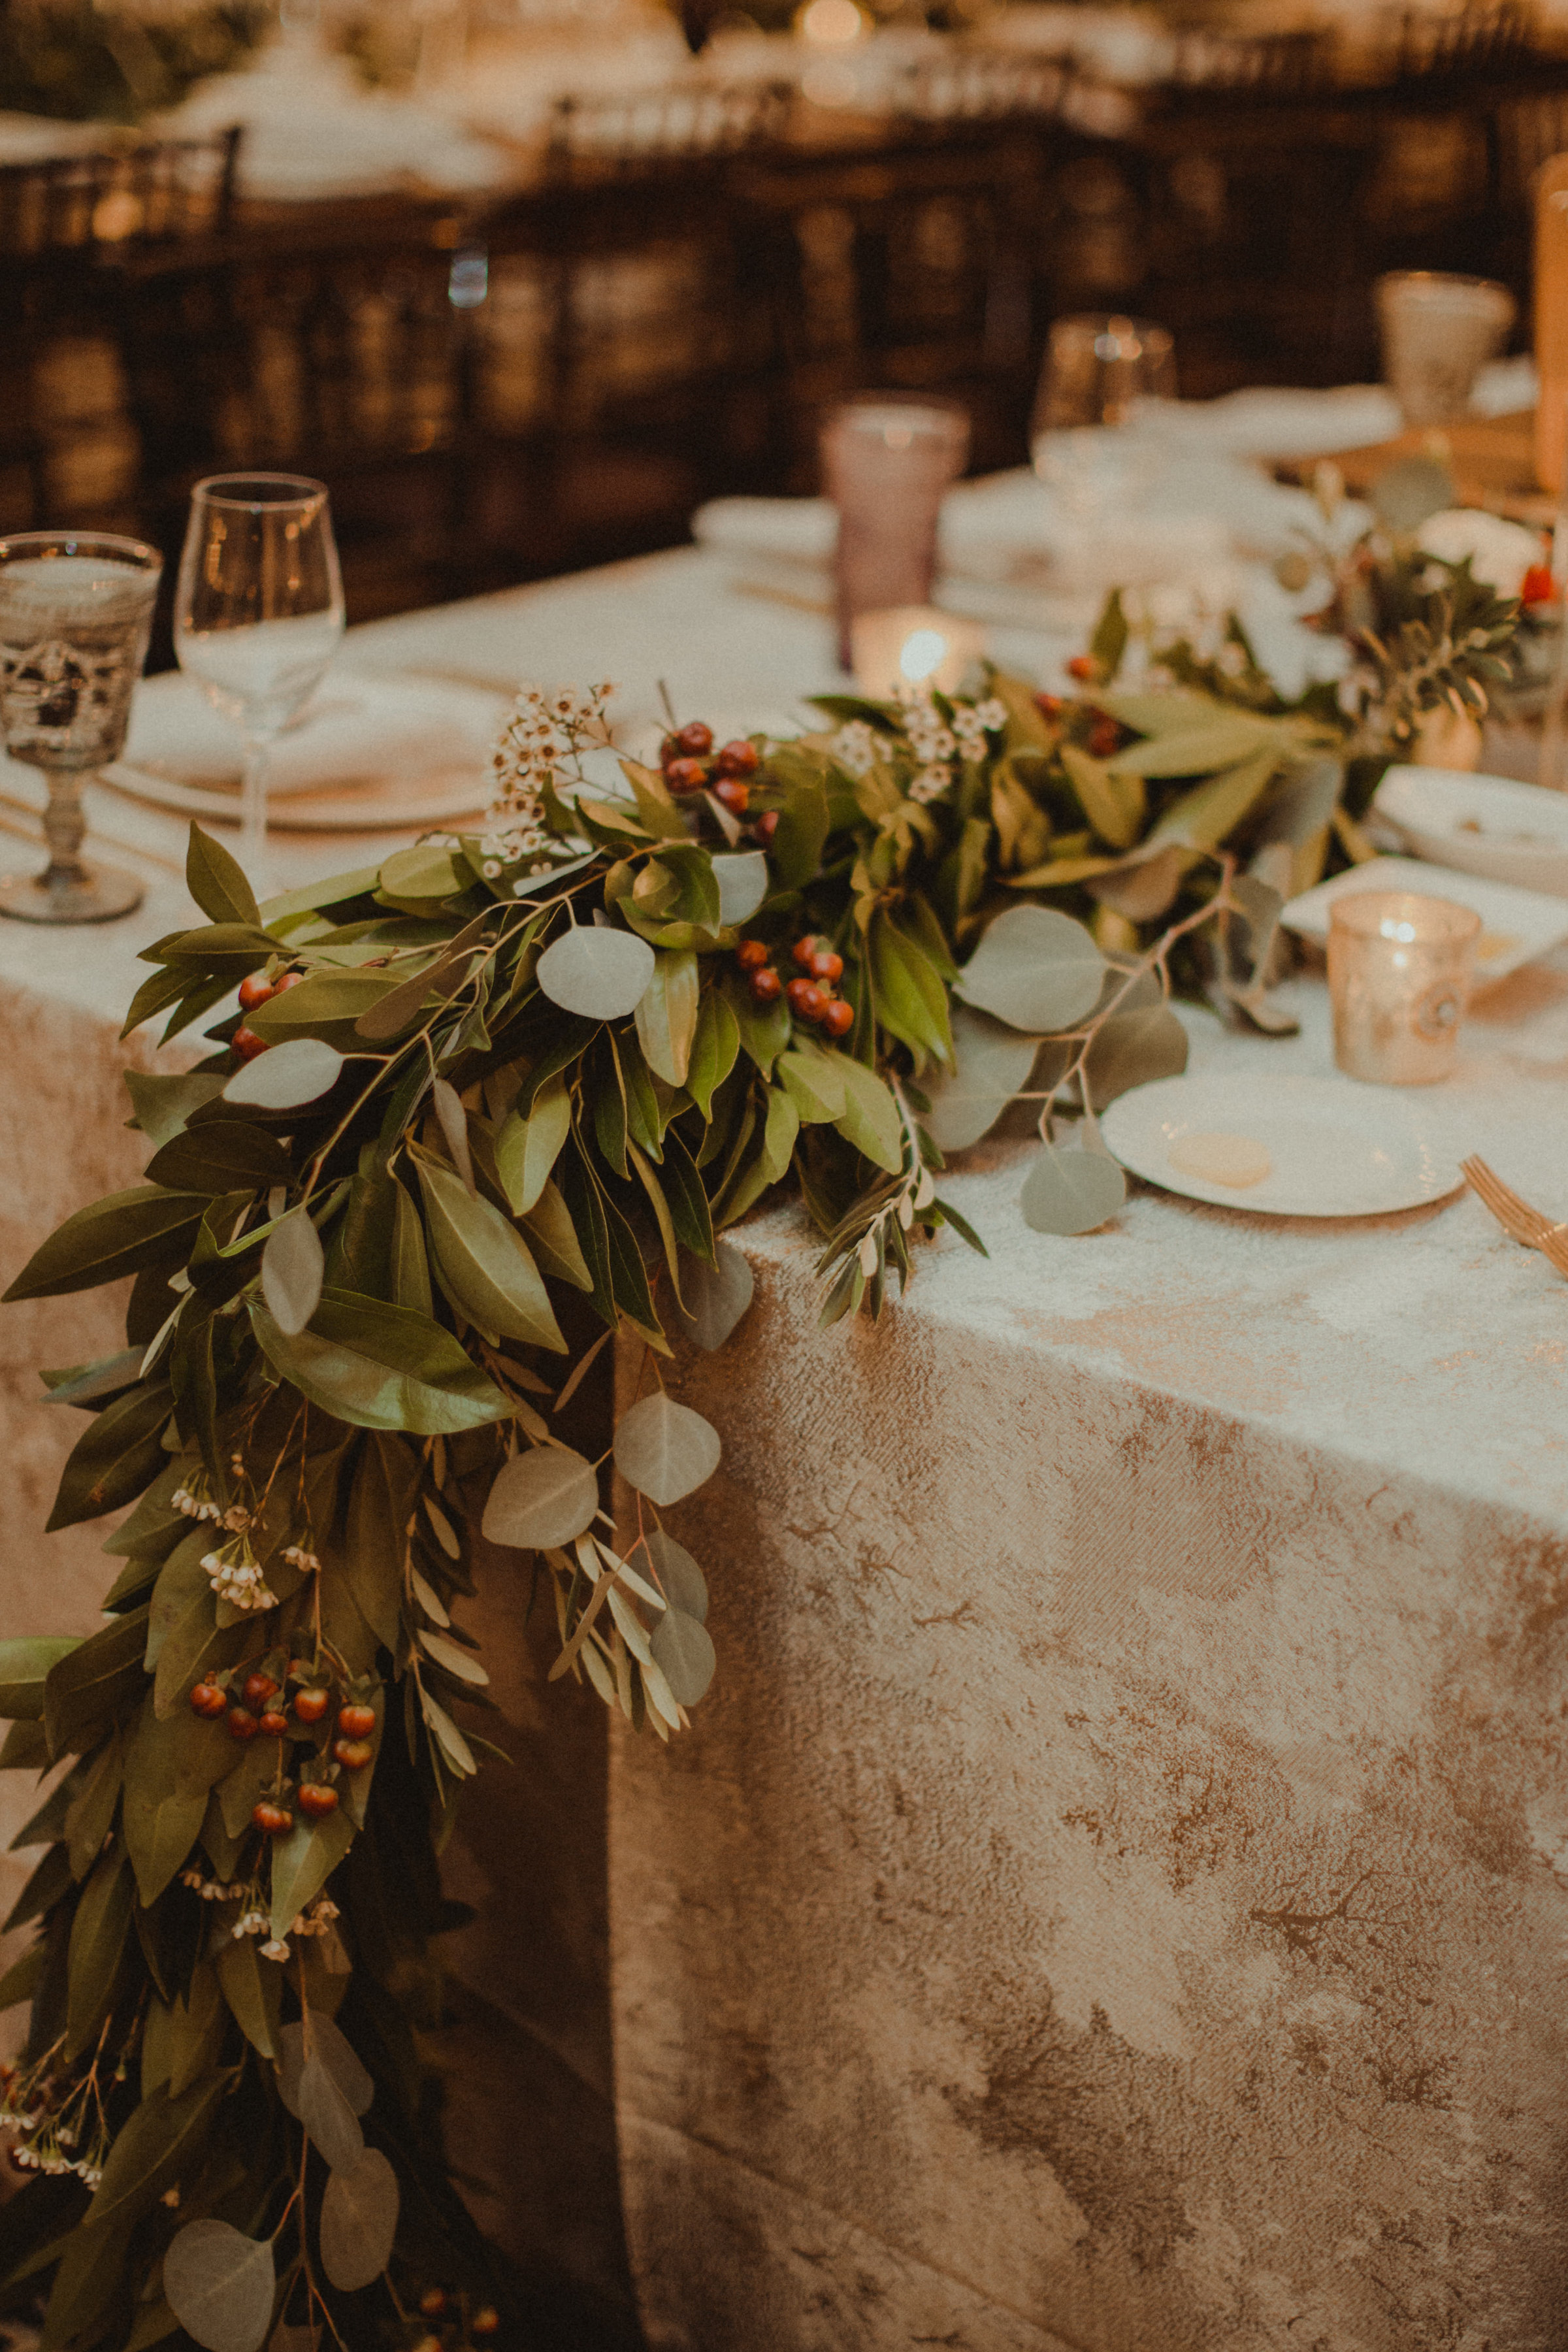 Garland table runners with red berries